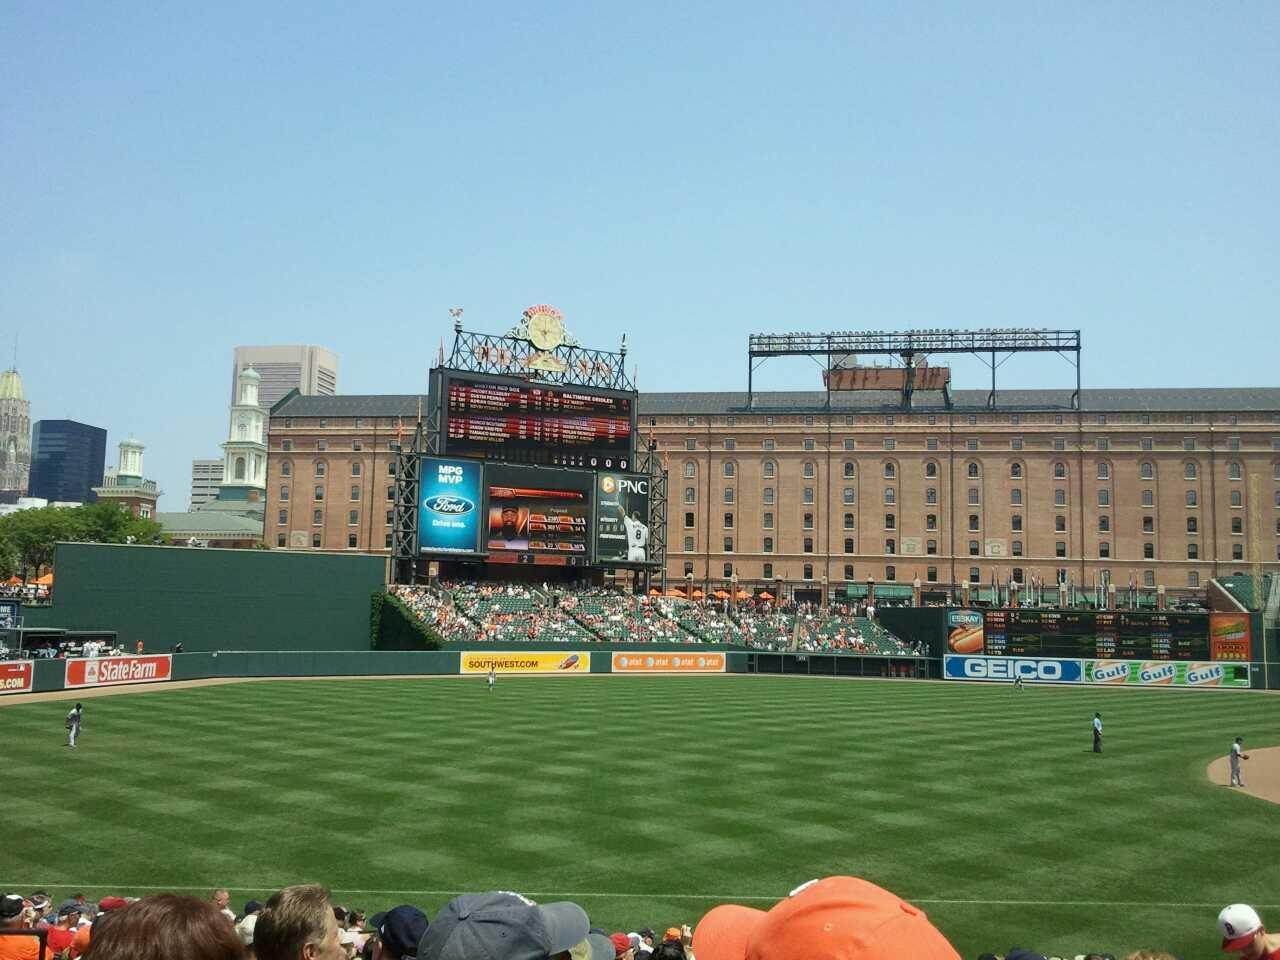 Oriole Park at Camden Yards Section 62 Row 22 Seat 7